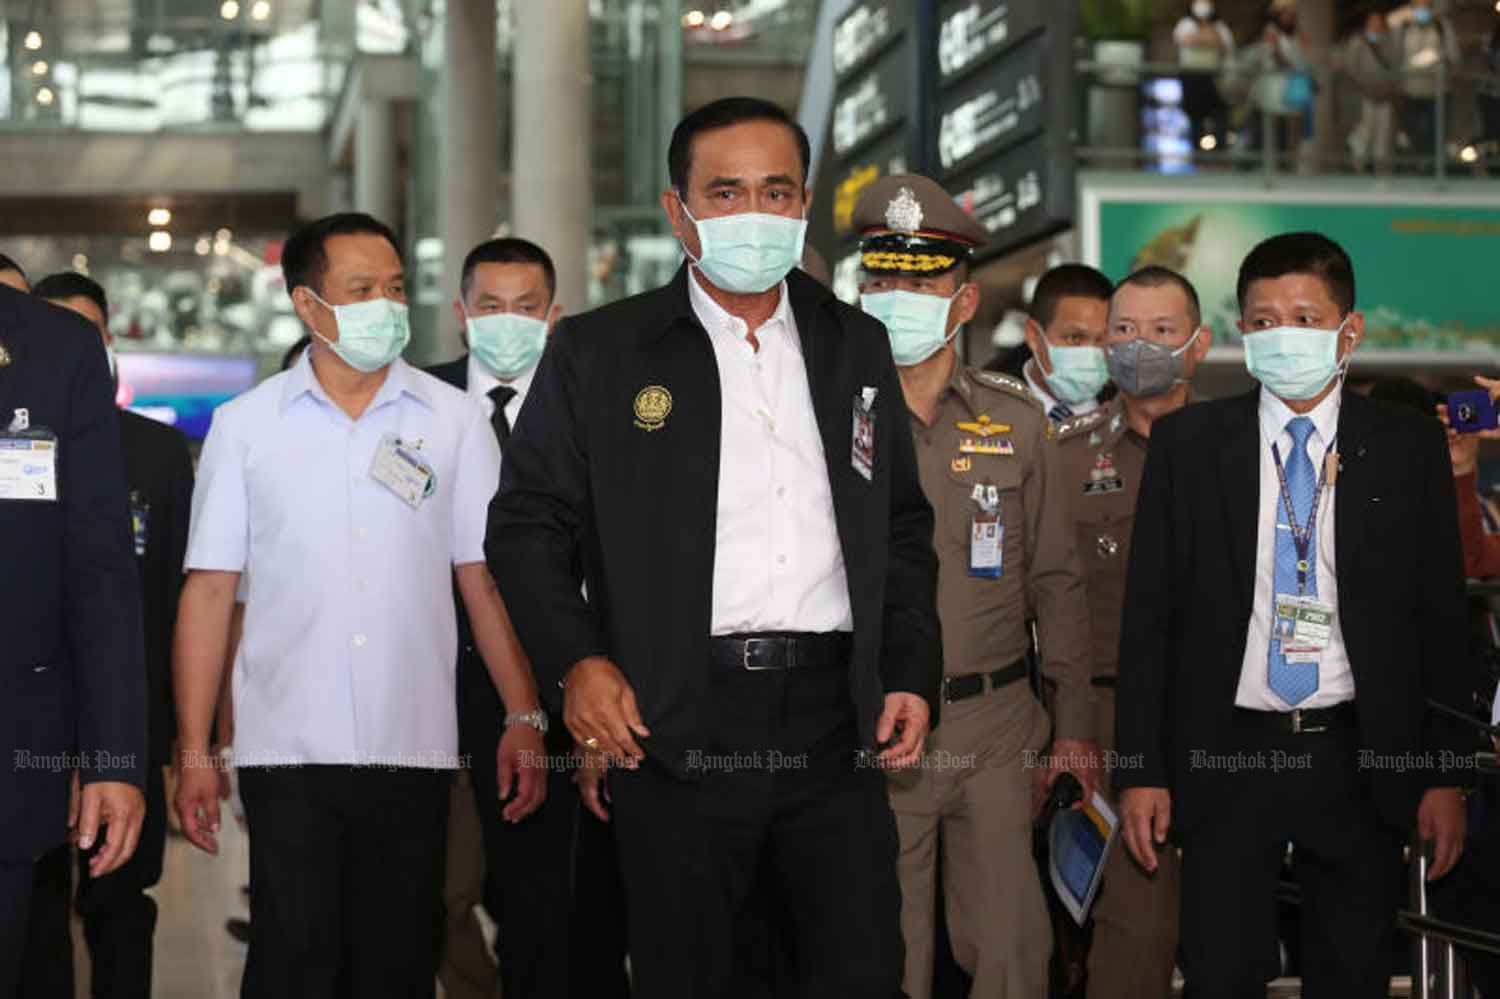 Prime Minister Prayut Chan-o-cha, centre, and officials visit Suvarnabhumi airport in Samut Prakan province on Wednesday to boost the morale of health officials screening visitors for the novel coronavirus. (Photo by Varuth Hirunyatheb)